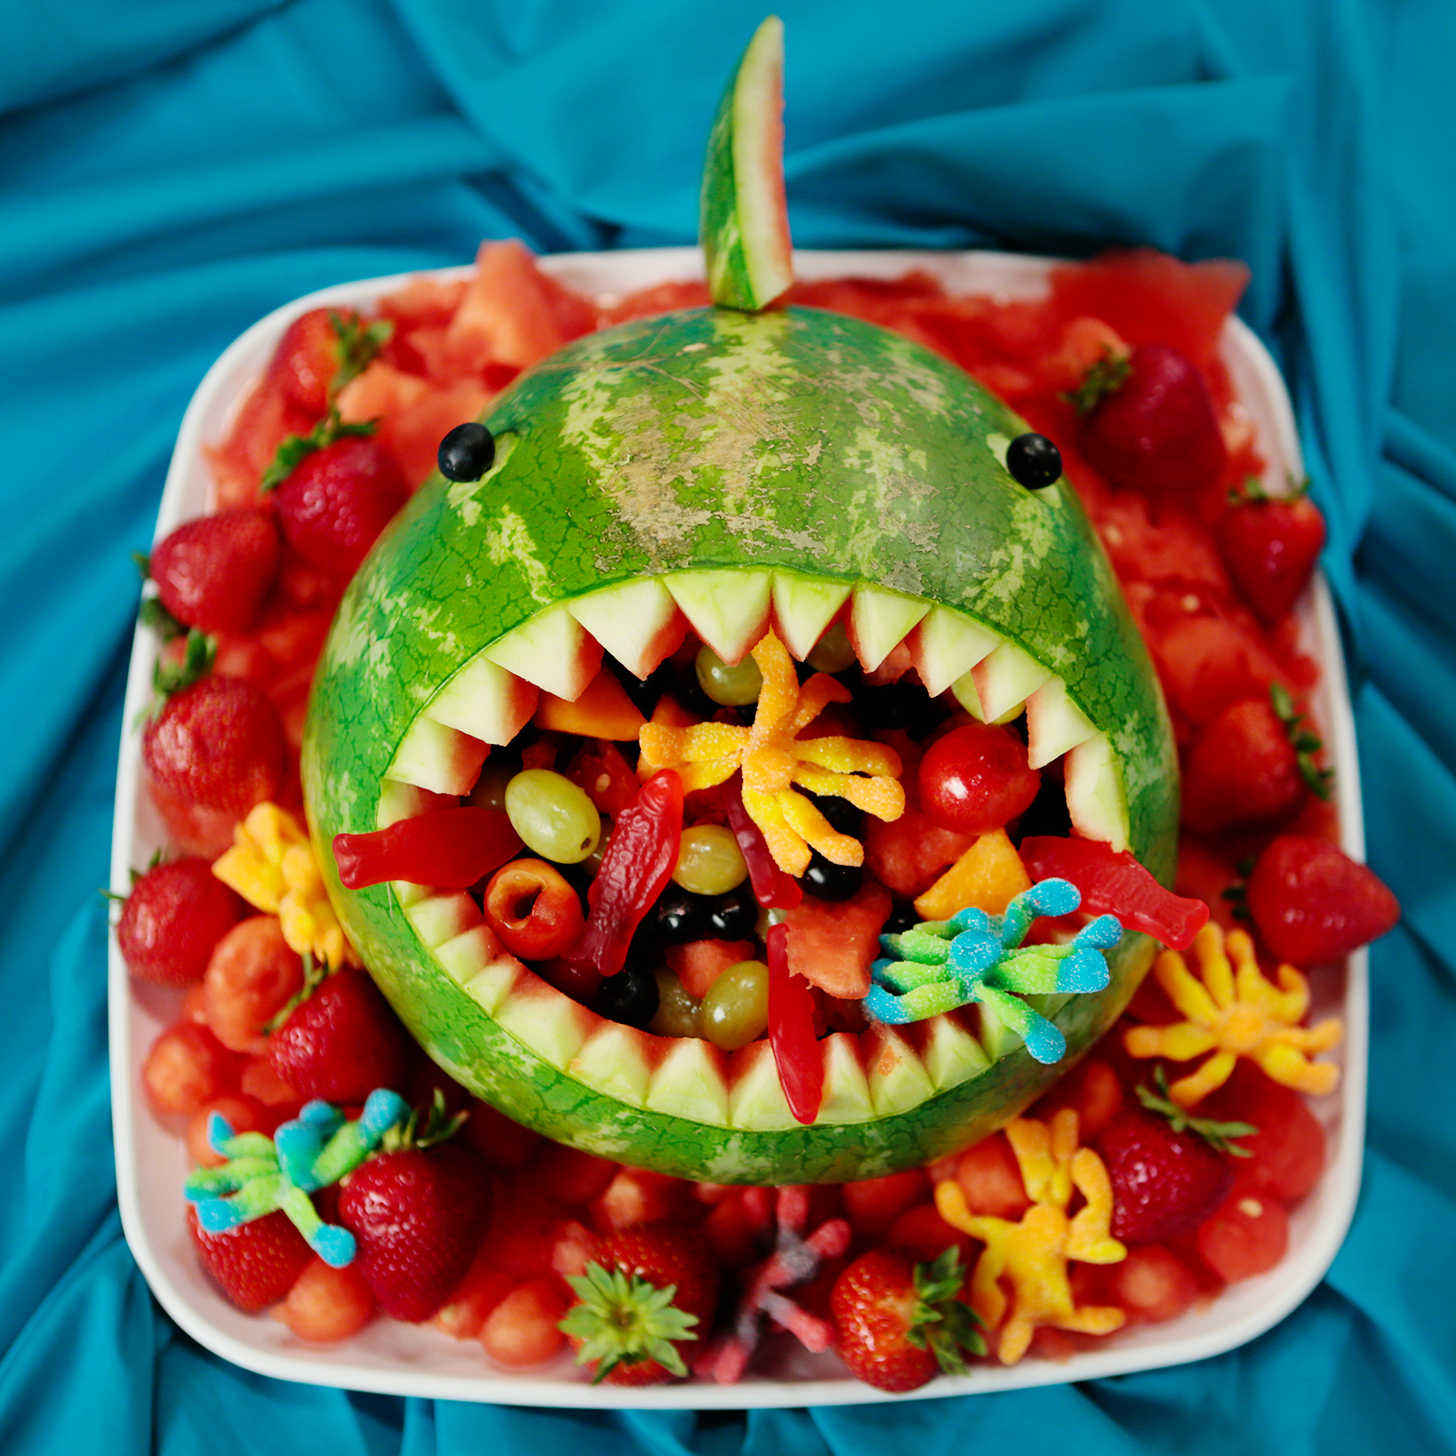 Share This Link Fruit Salad Designs